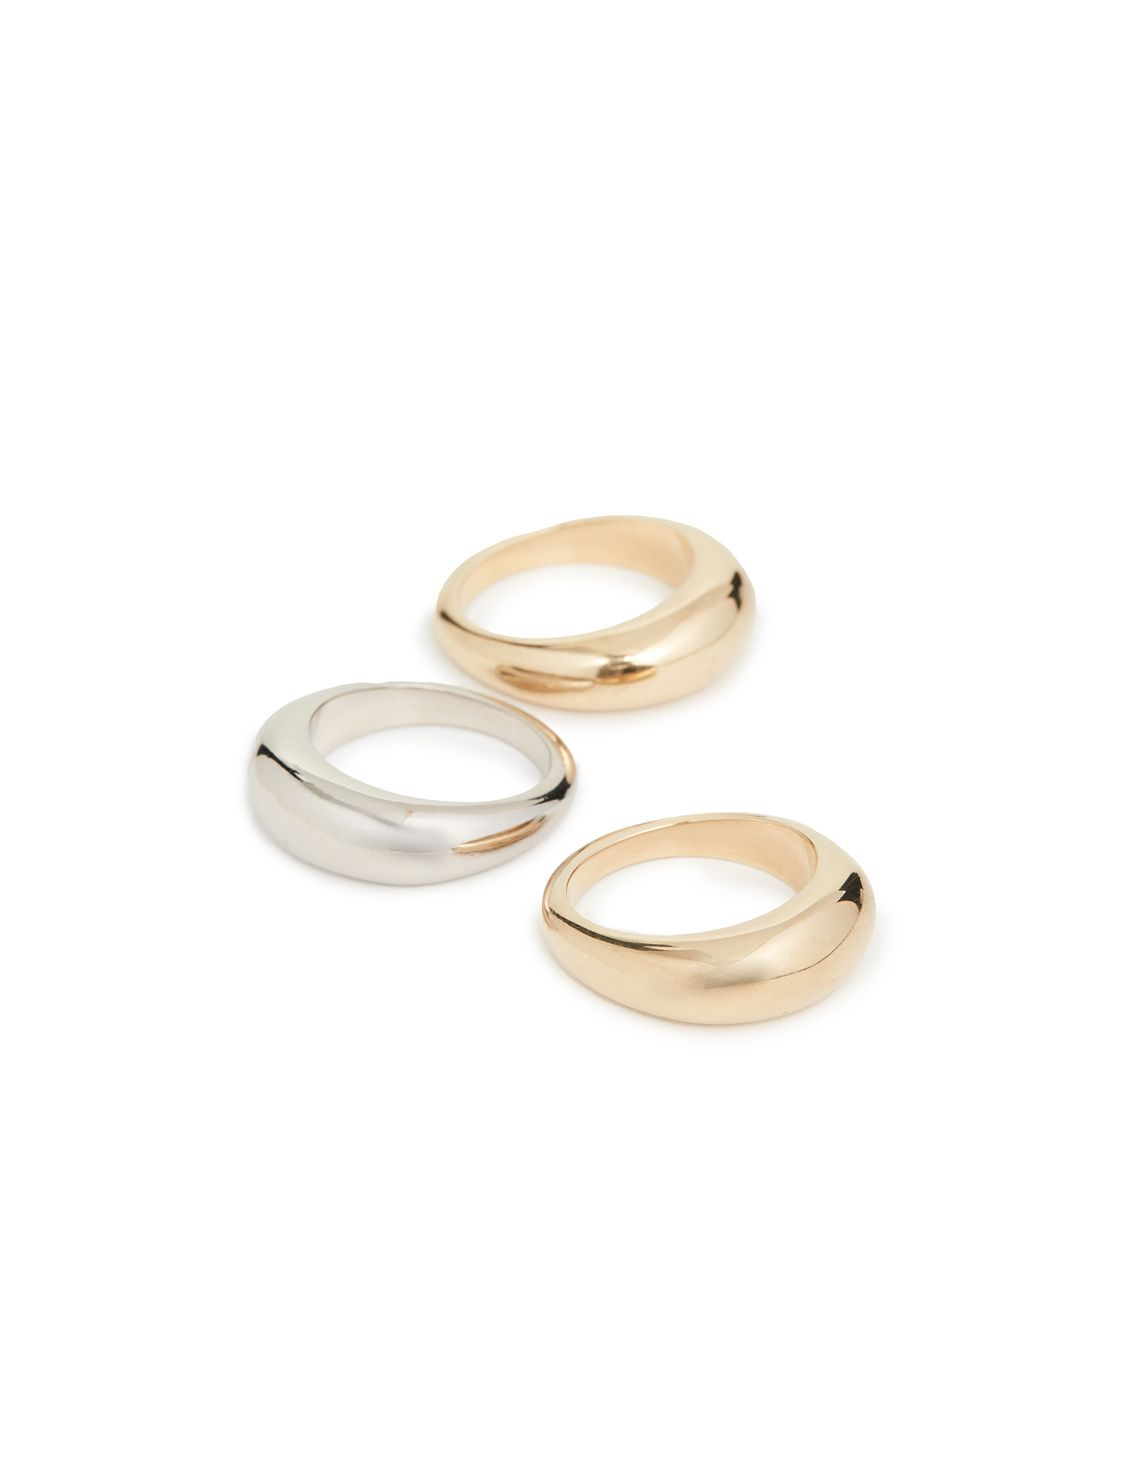 How to Find Your Ring Size in 3 Easy Steps 10